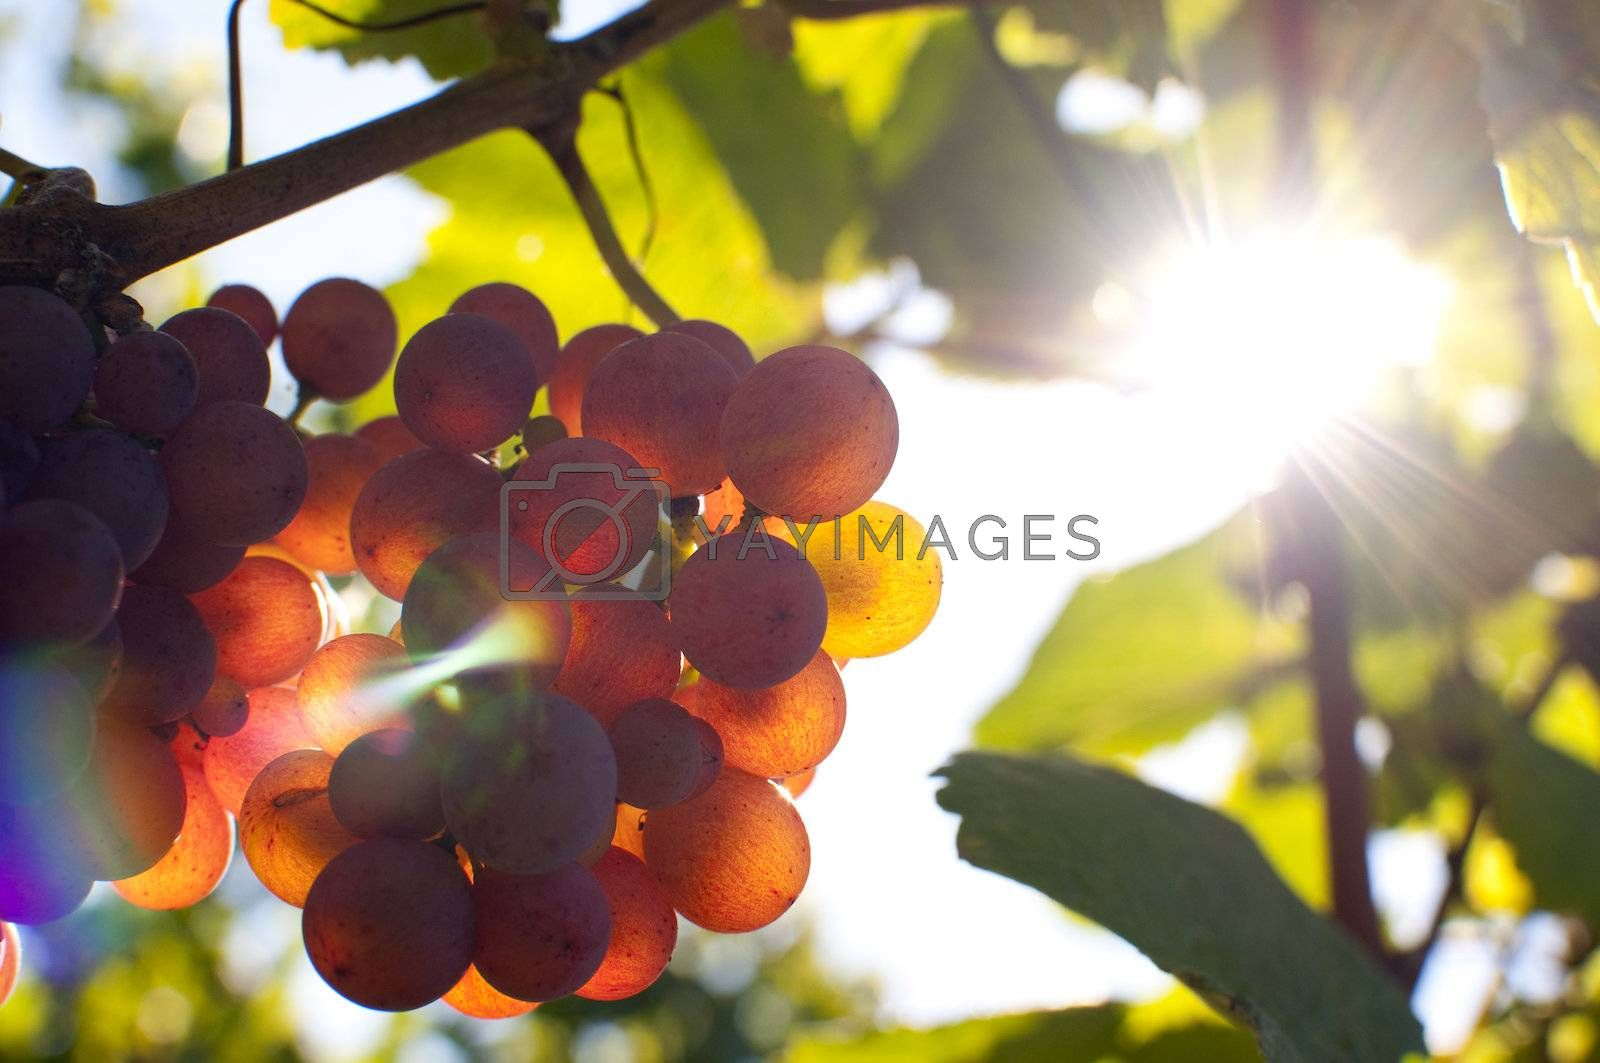 Close-up of a bunch of grapes on grapevine at susnset. Shallow DOF.